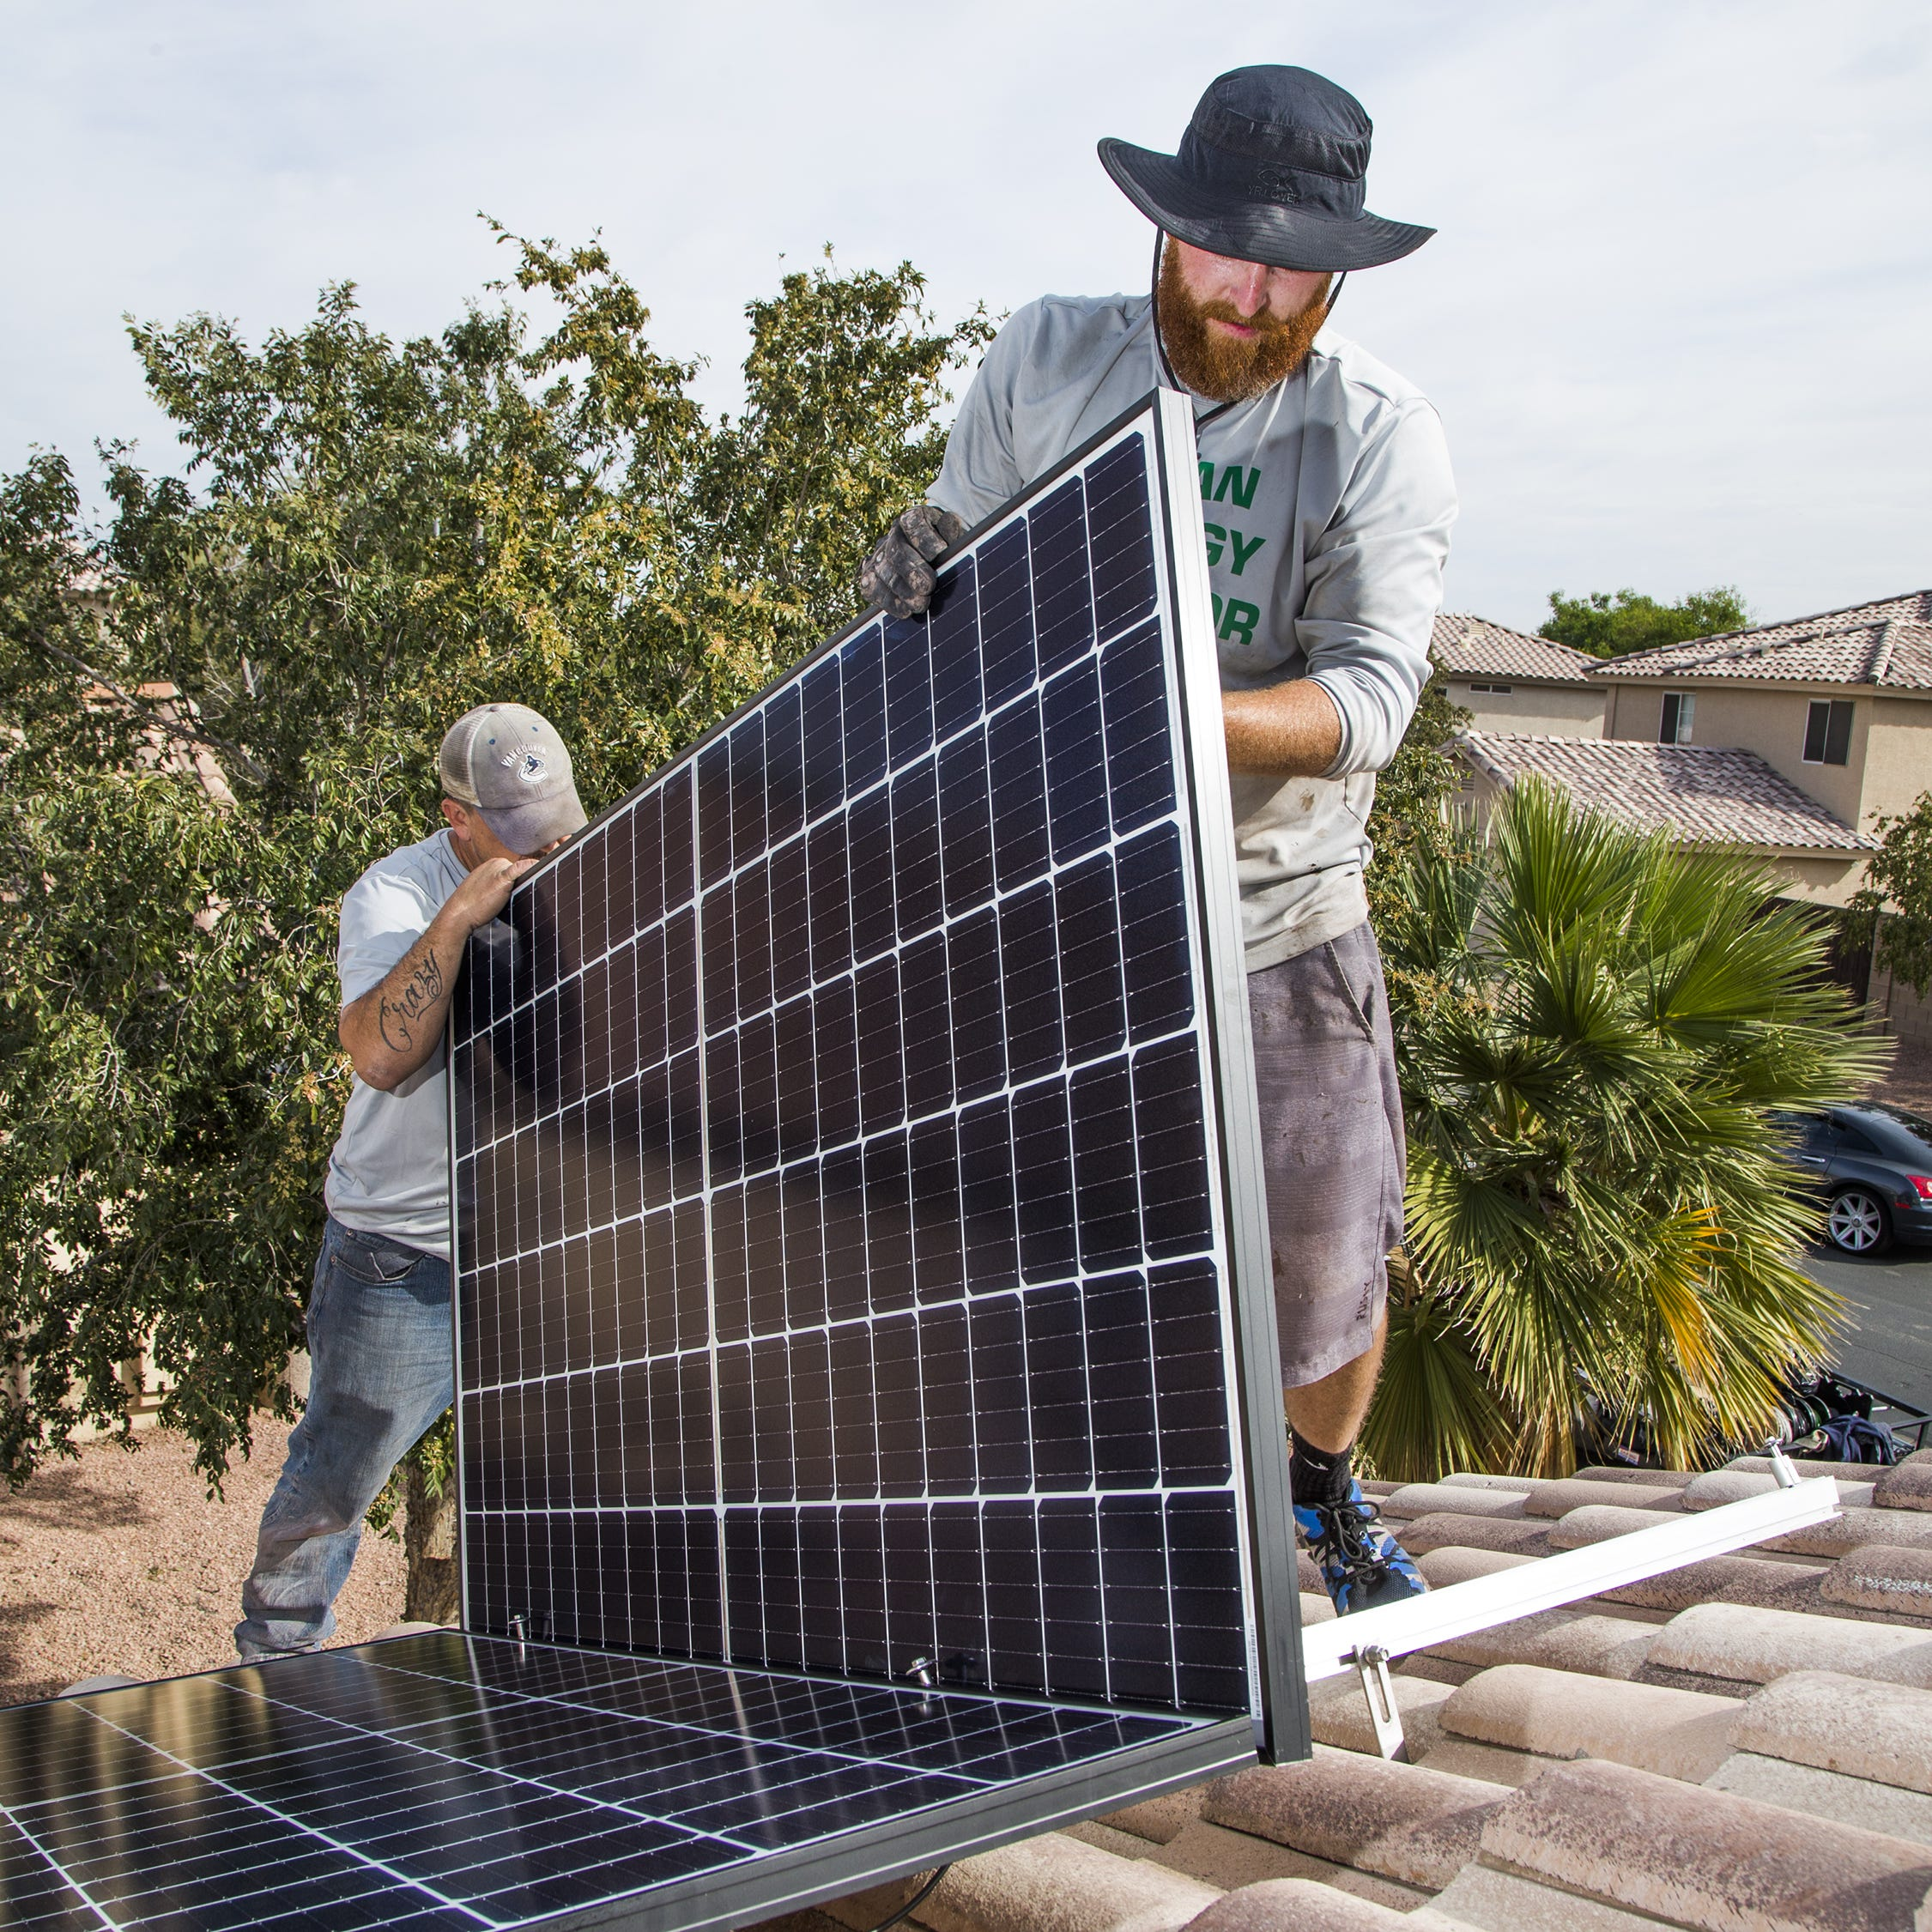 SRP looks at another solar rate alternative, but new proposal doesn't appease critics